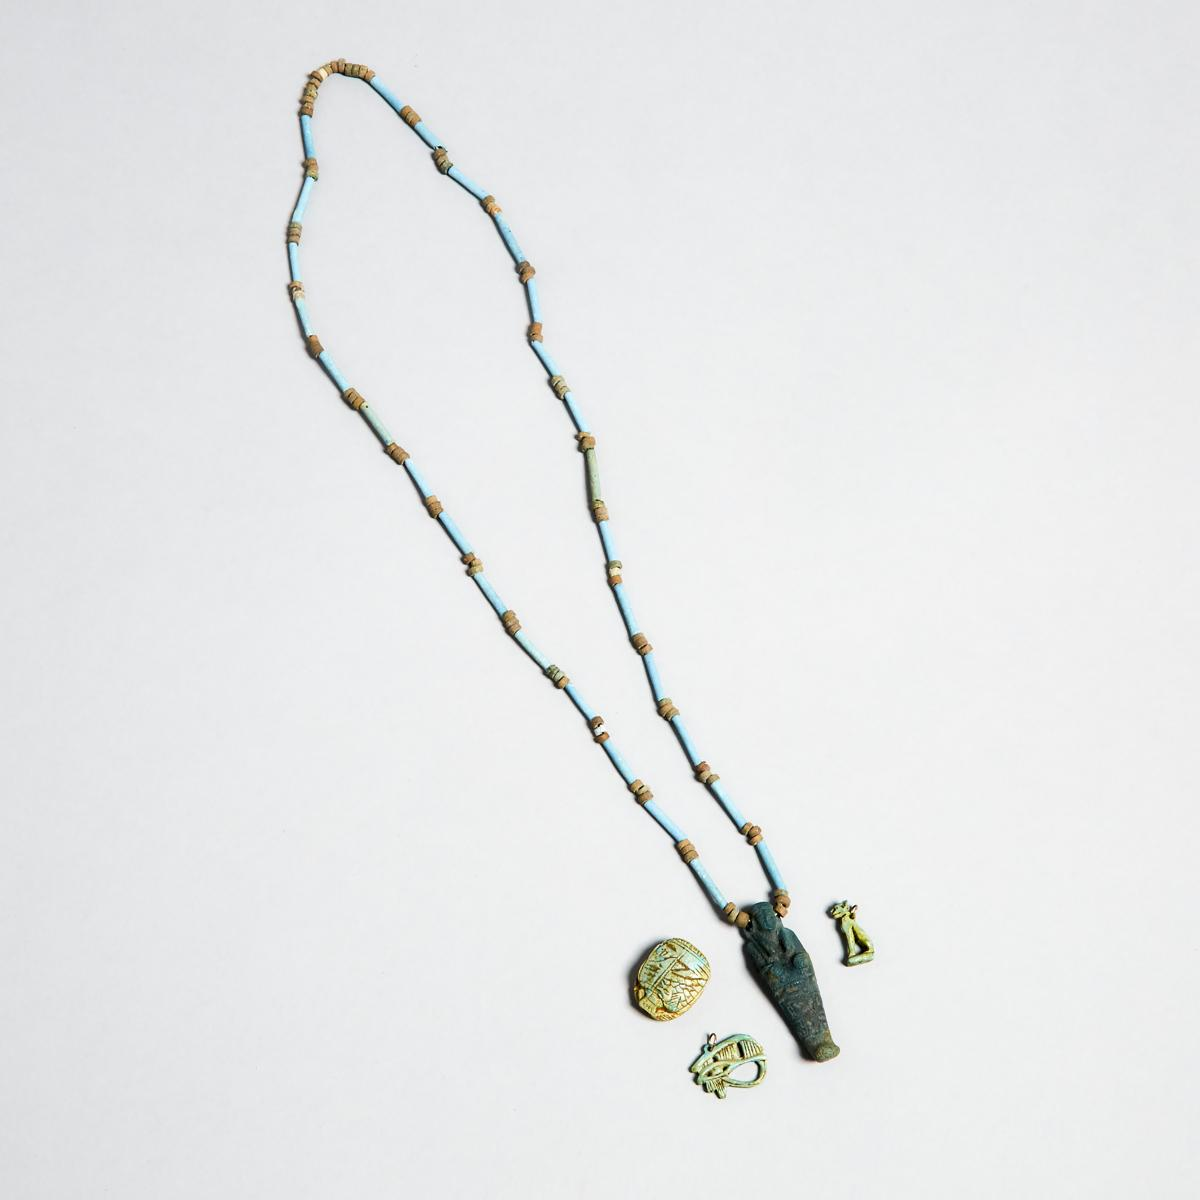 Group of Egyptian Turquoise Faience Amulets and Beads, New Kingdom to Late Period, 1550-332 B.C., sh